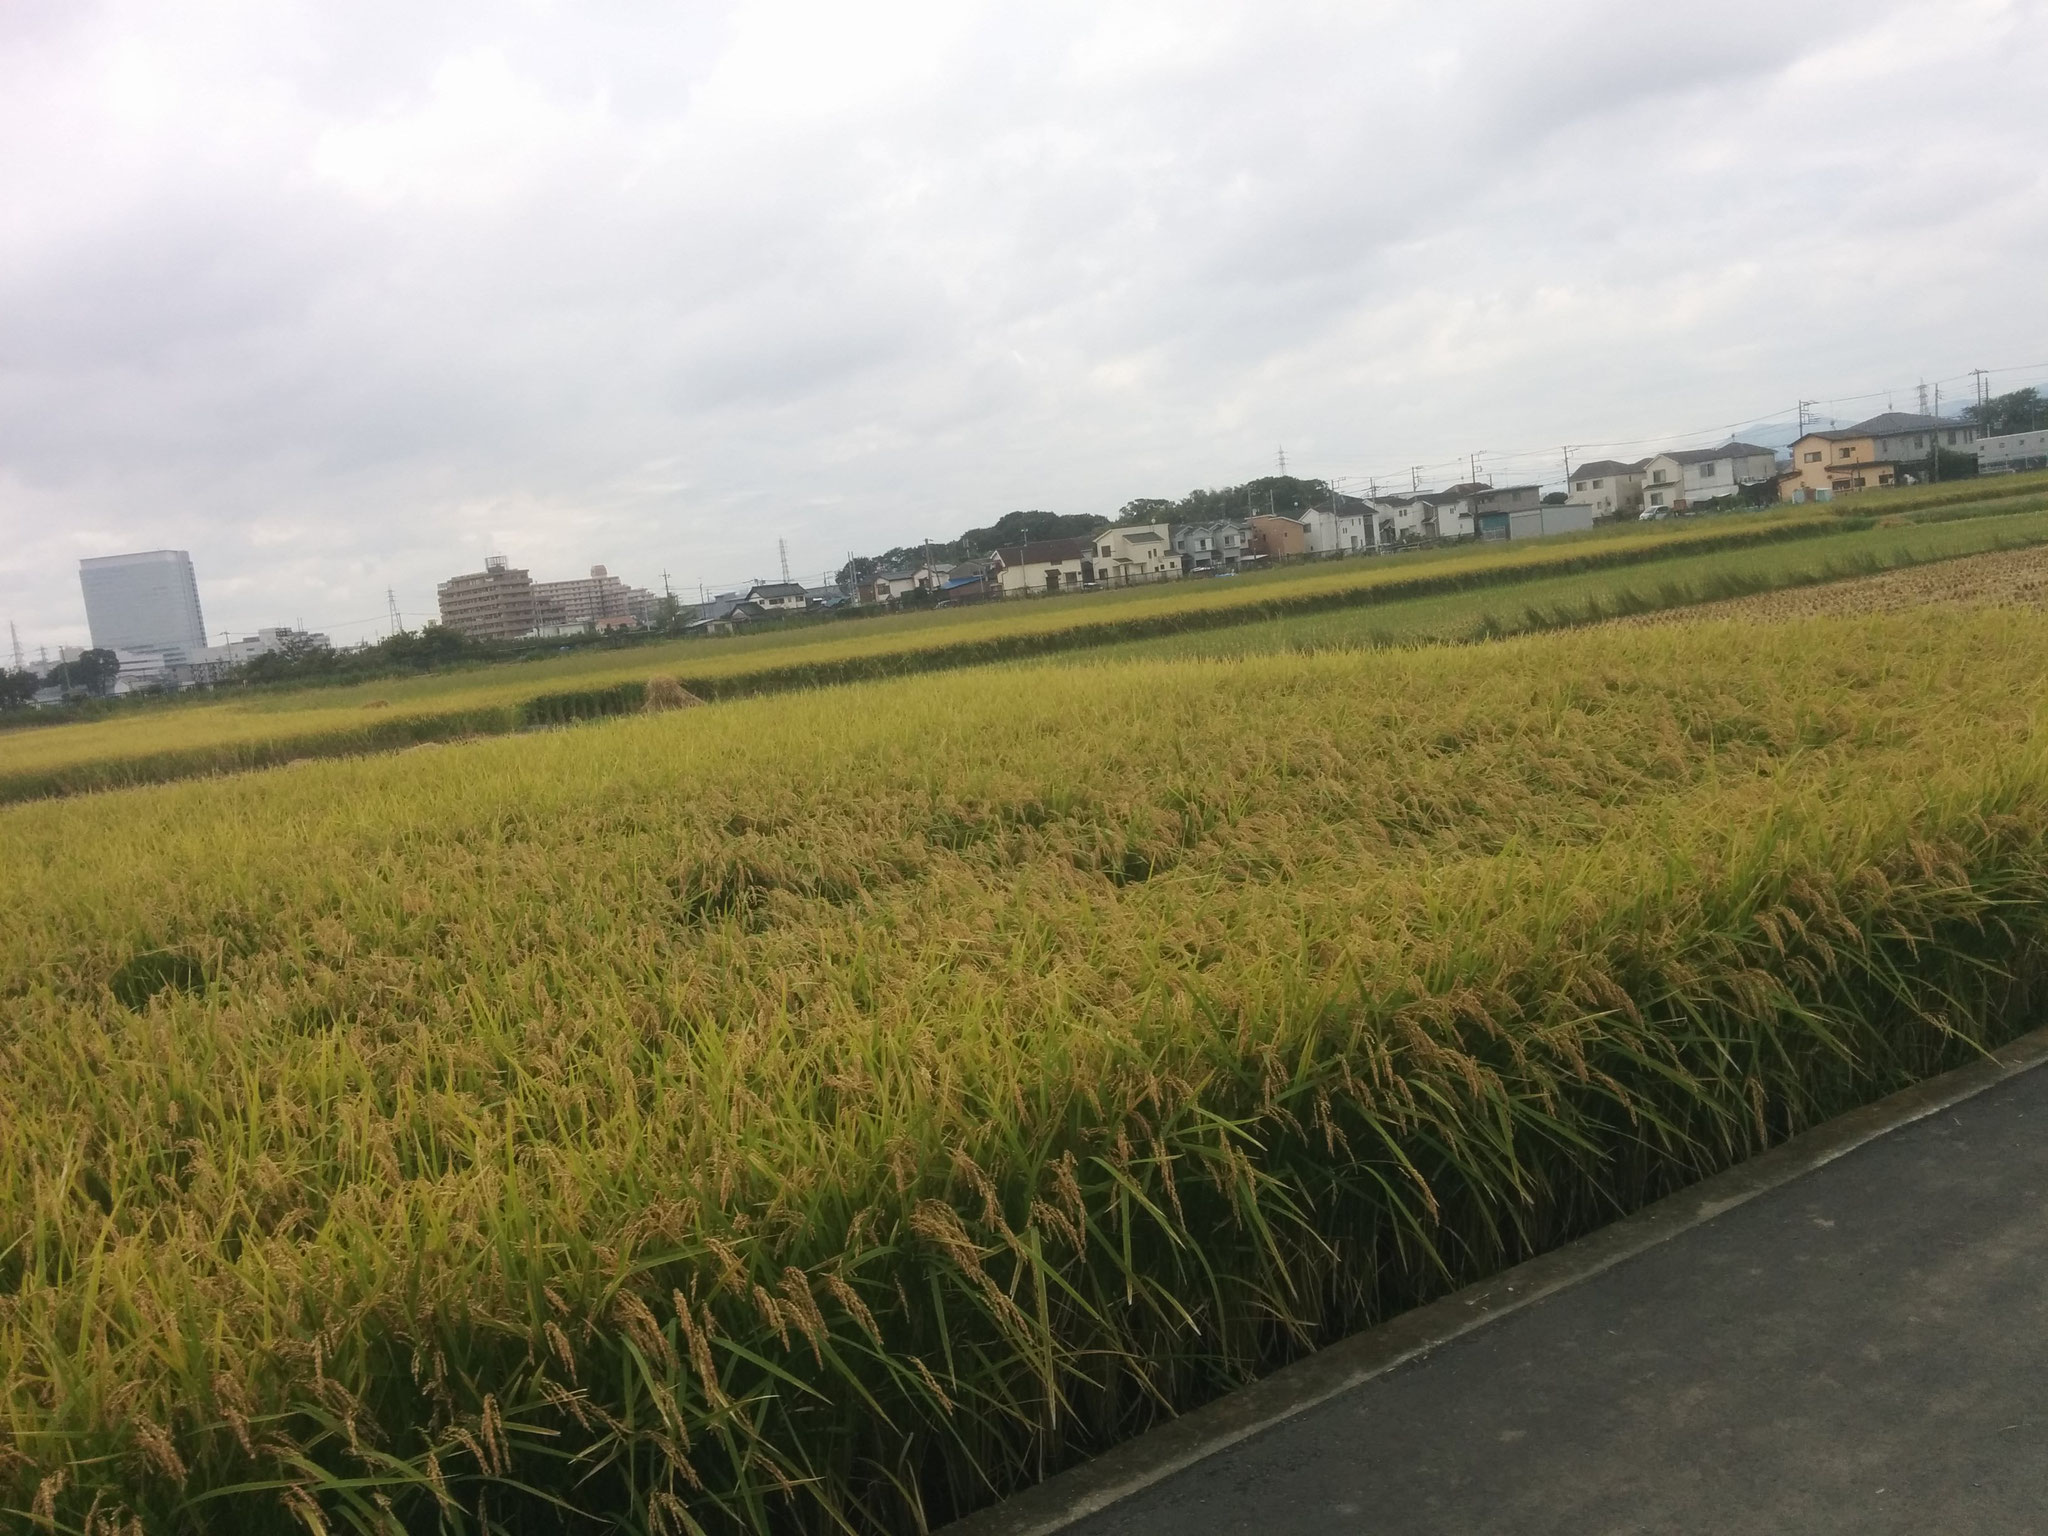 31 The rice field we worked on